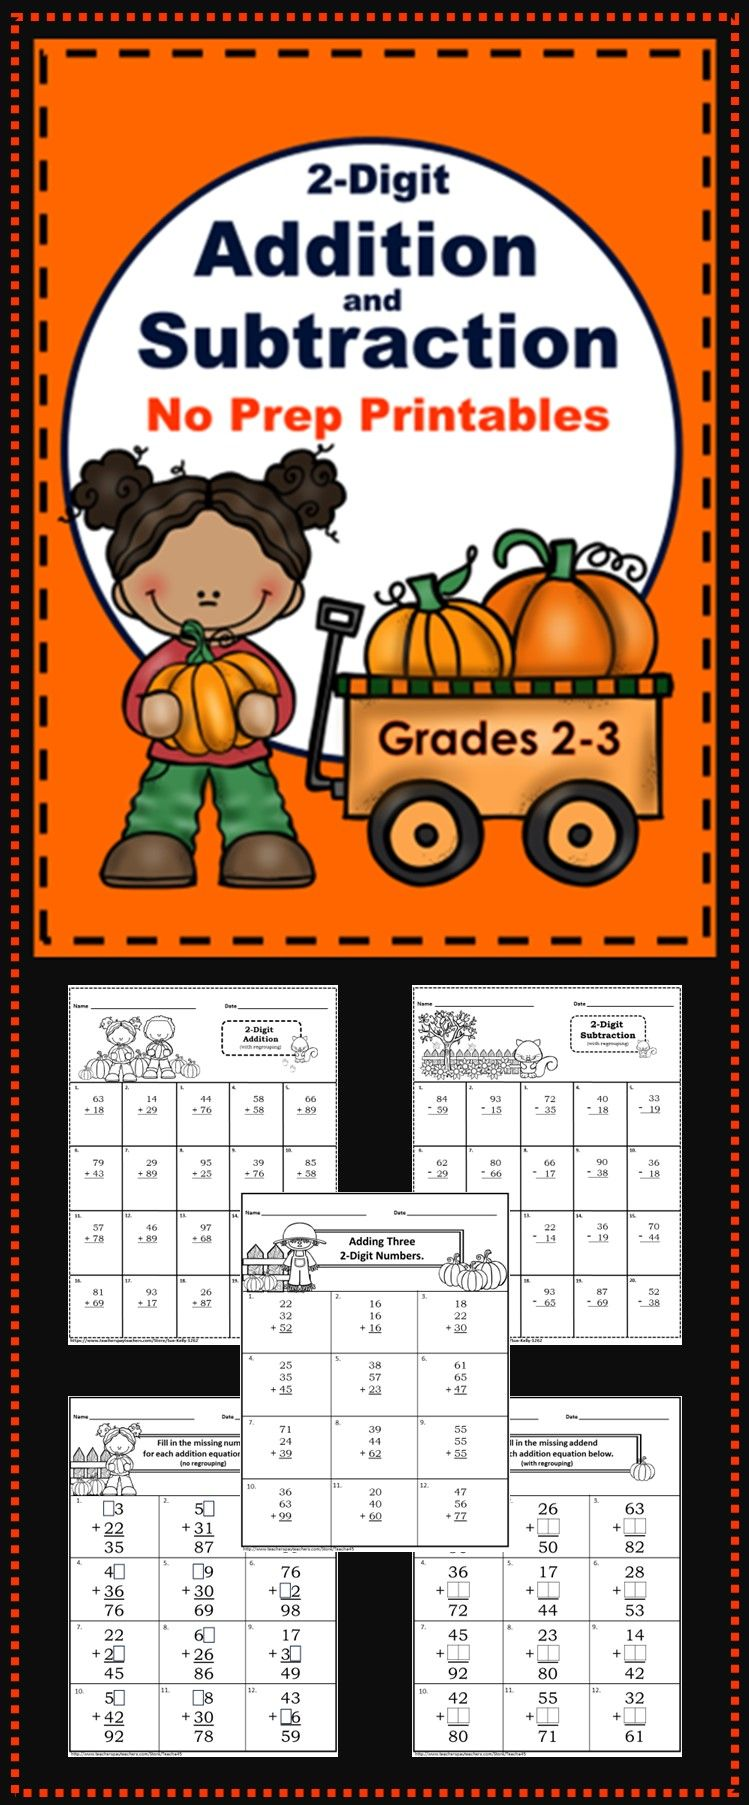 Fall Themed 2 Digit Addition And Subtraction No Prep Printables Grades 2 3 Addition And Subtraction Subtraction Math Resources [ 1805 x 749 Pixel ]